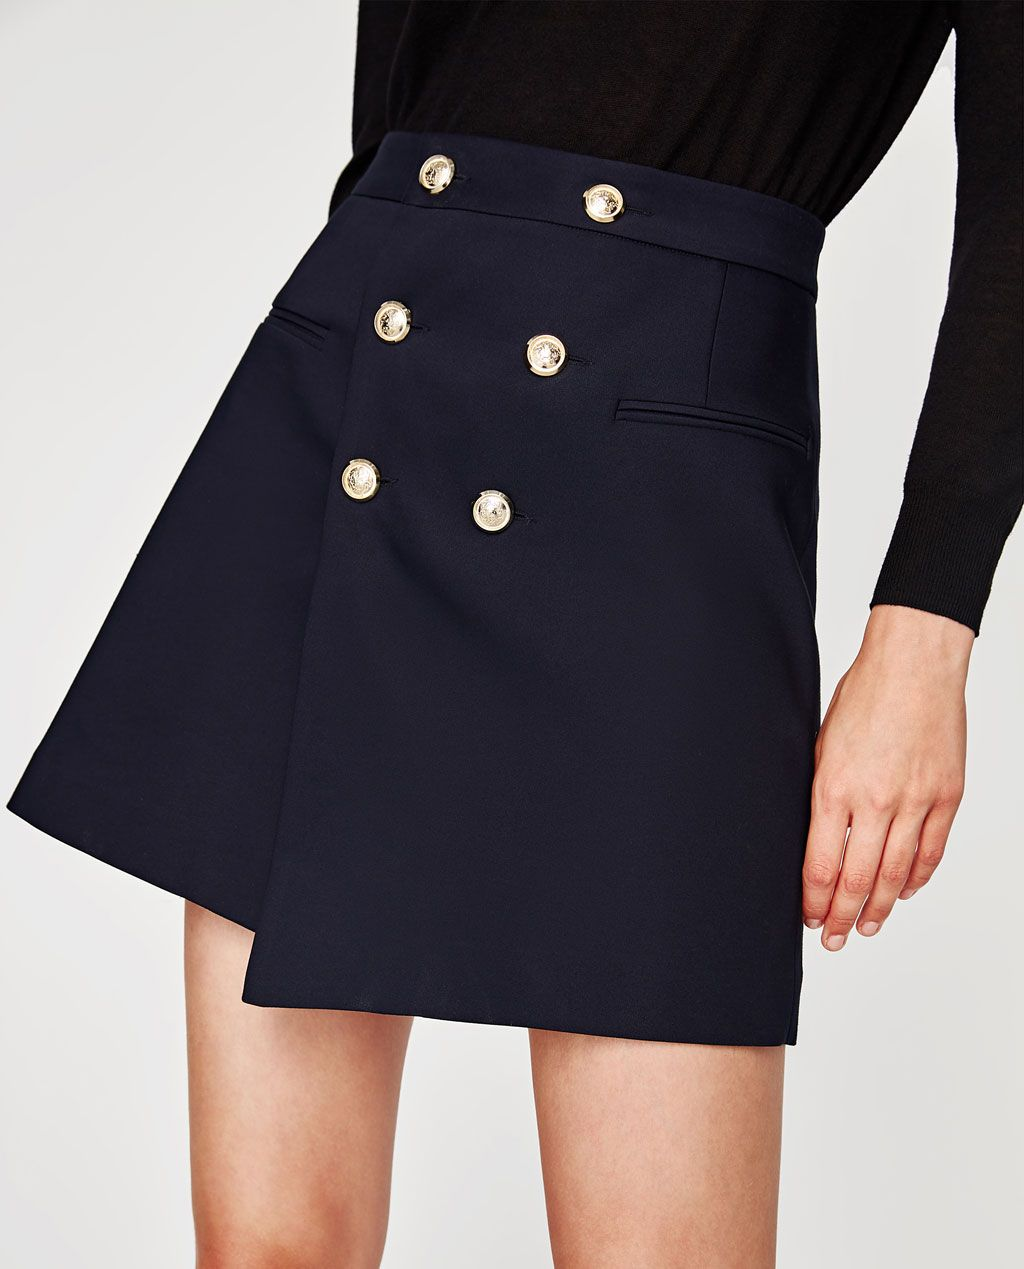 Skirt with gold buttonsbest sellerswoman zara united states